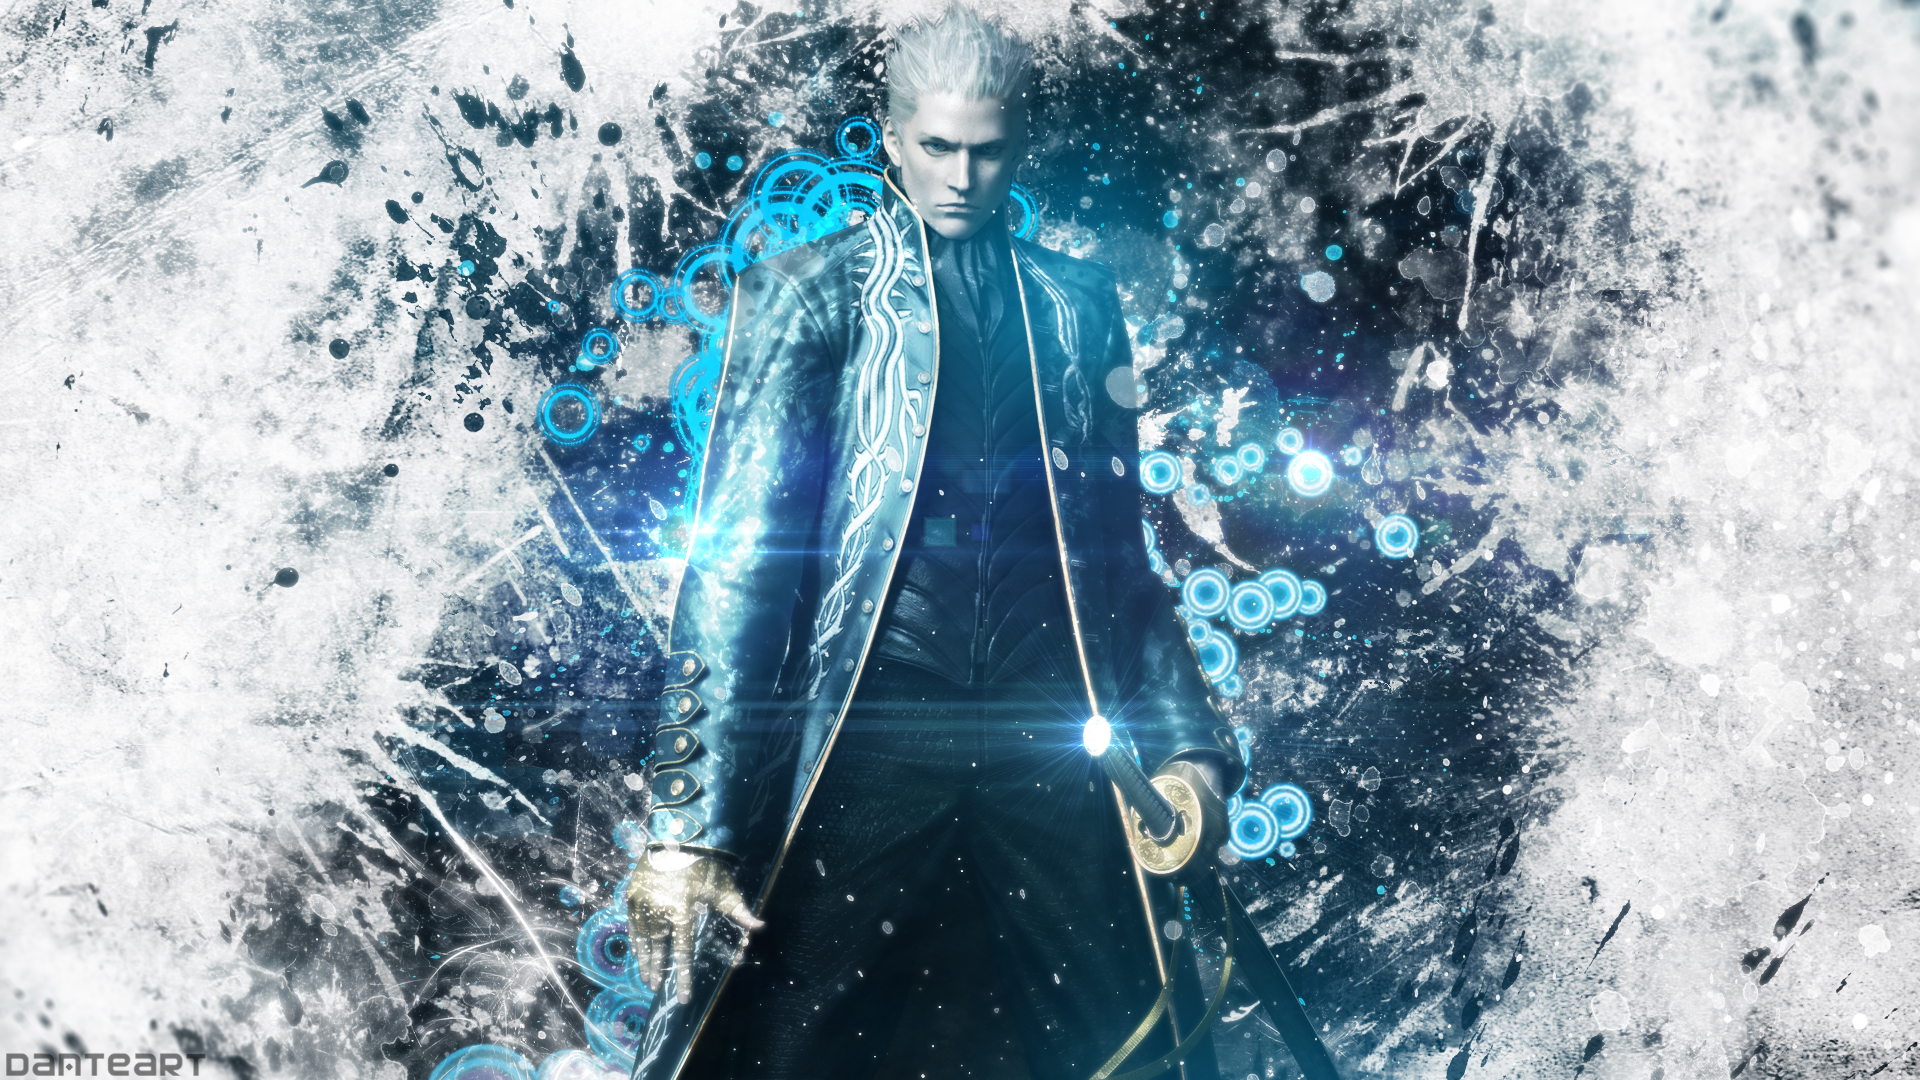 http://www.uplooder.net/img/image/38/f90ca9d0a923c9a188d3723e67eb8afe/devil-may-cry-3-vergil-wallpaper-by-danteartwallpapers-d7ut3hf.jpg